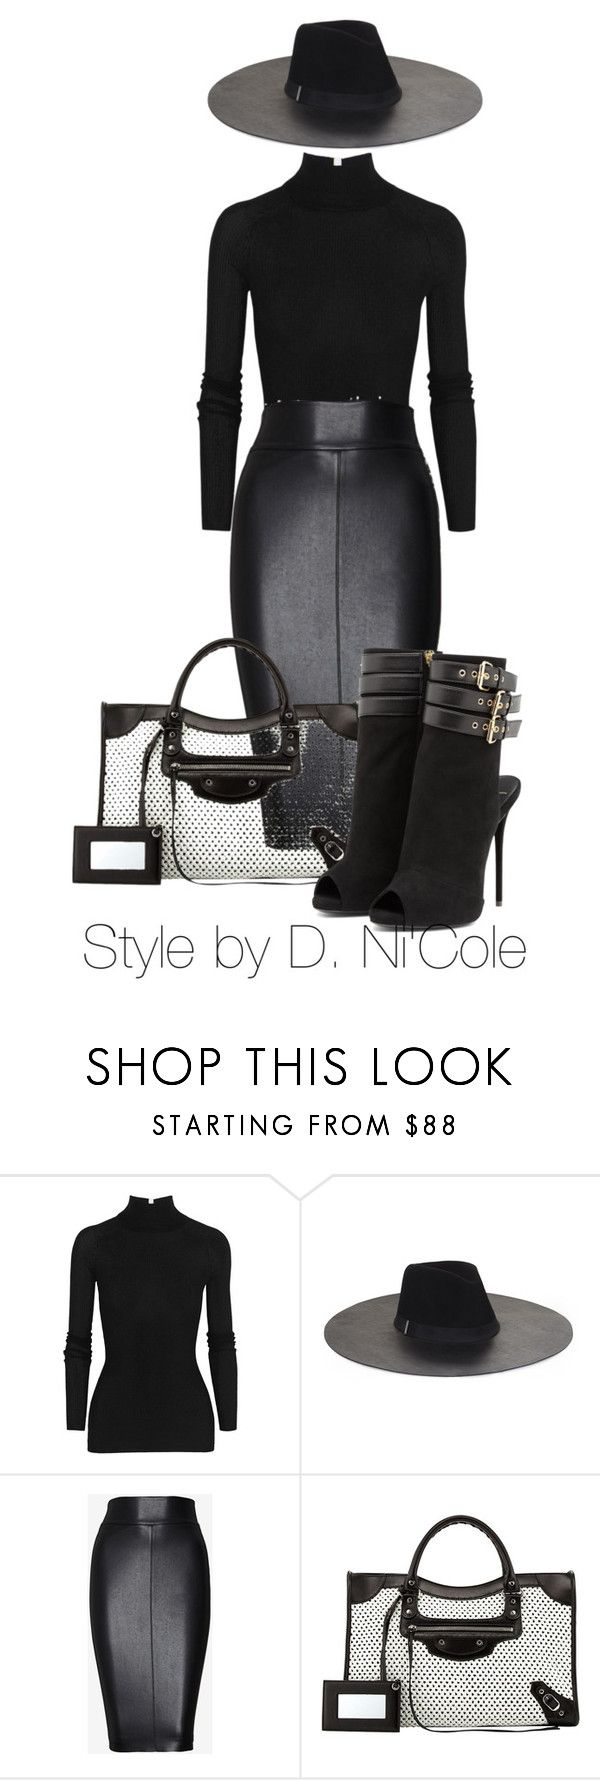 """""""Untitled #1953"""" by stylebydnicole ❤ liked on Polyvore featuring T By Alexander Wang, BCBGMAXAZRIA, Bailey 44, Balenciaga and Giuseppe Zanotti"""